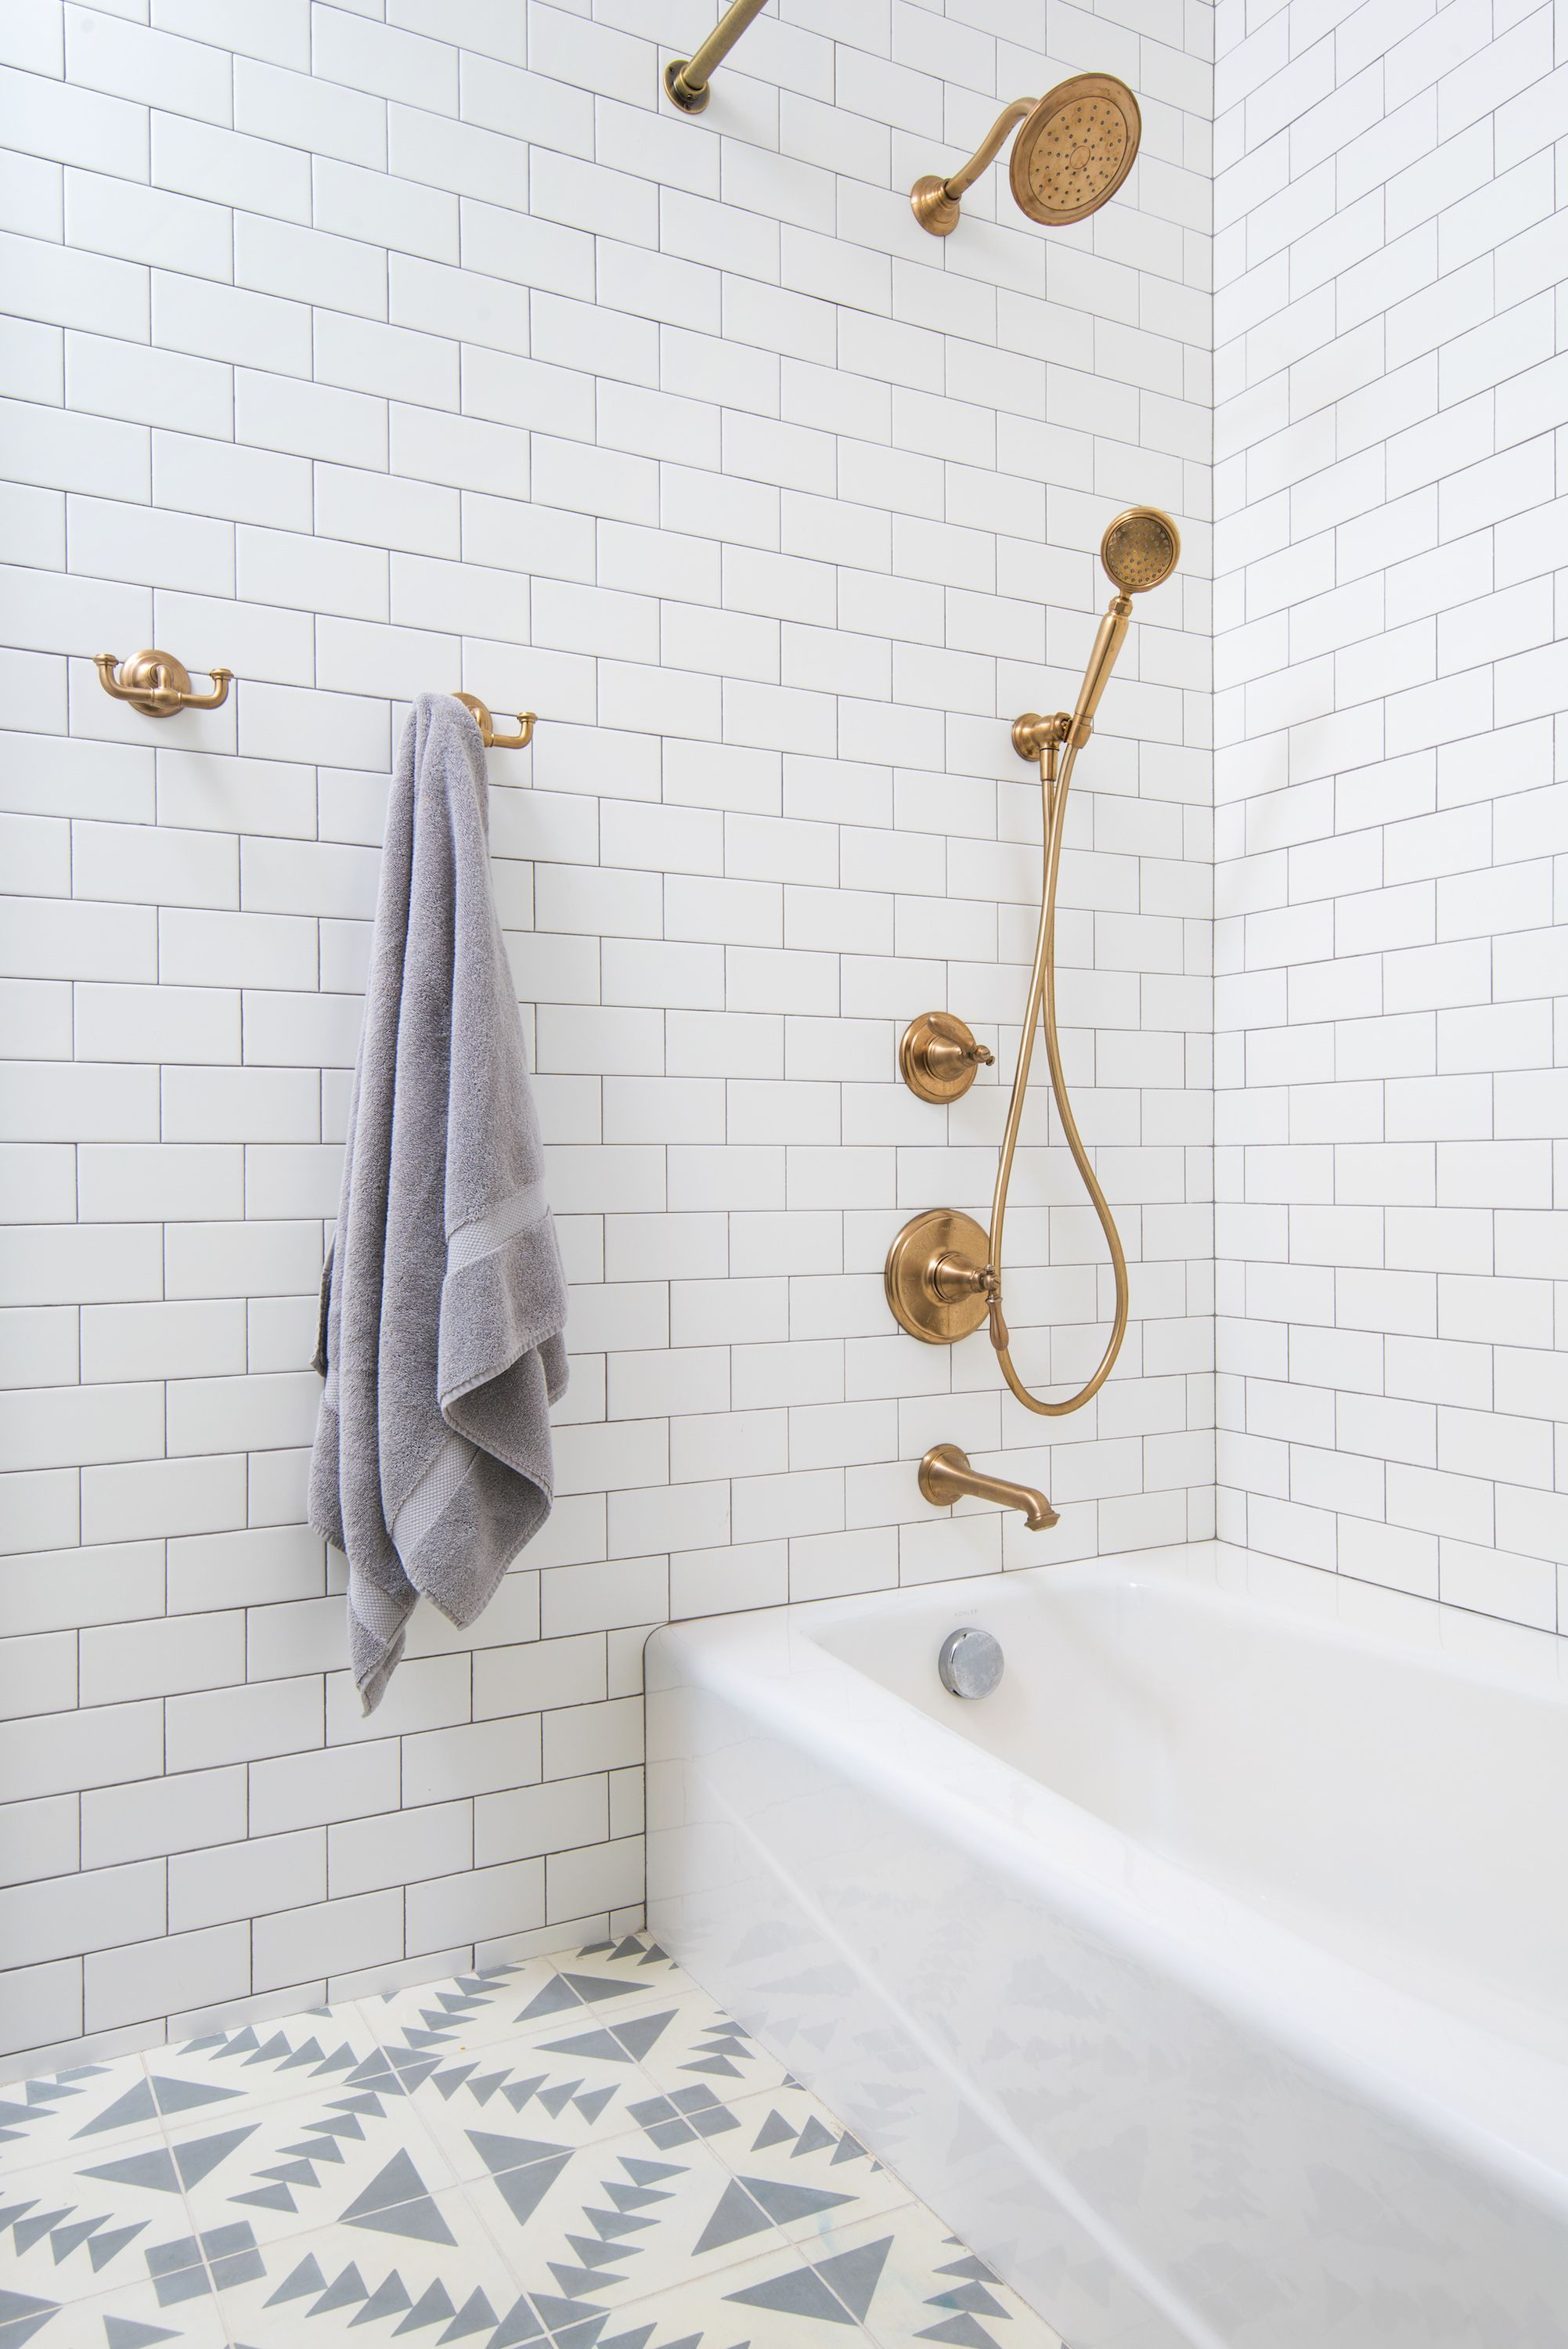 by tsai styling sandie interior pin design bathroom fixtures gold